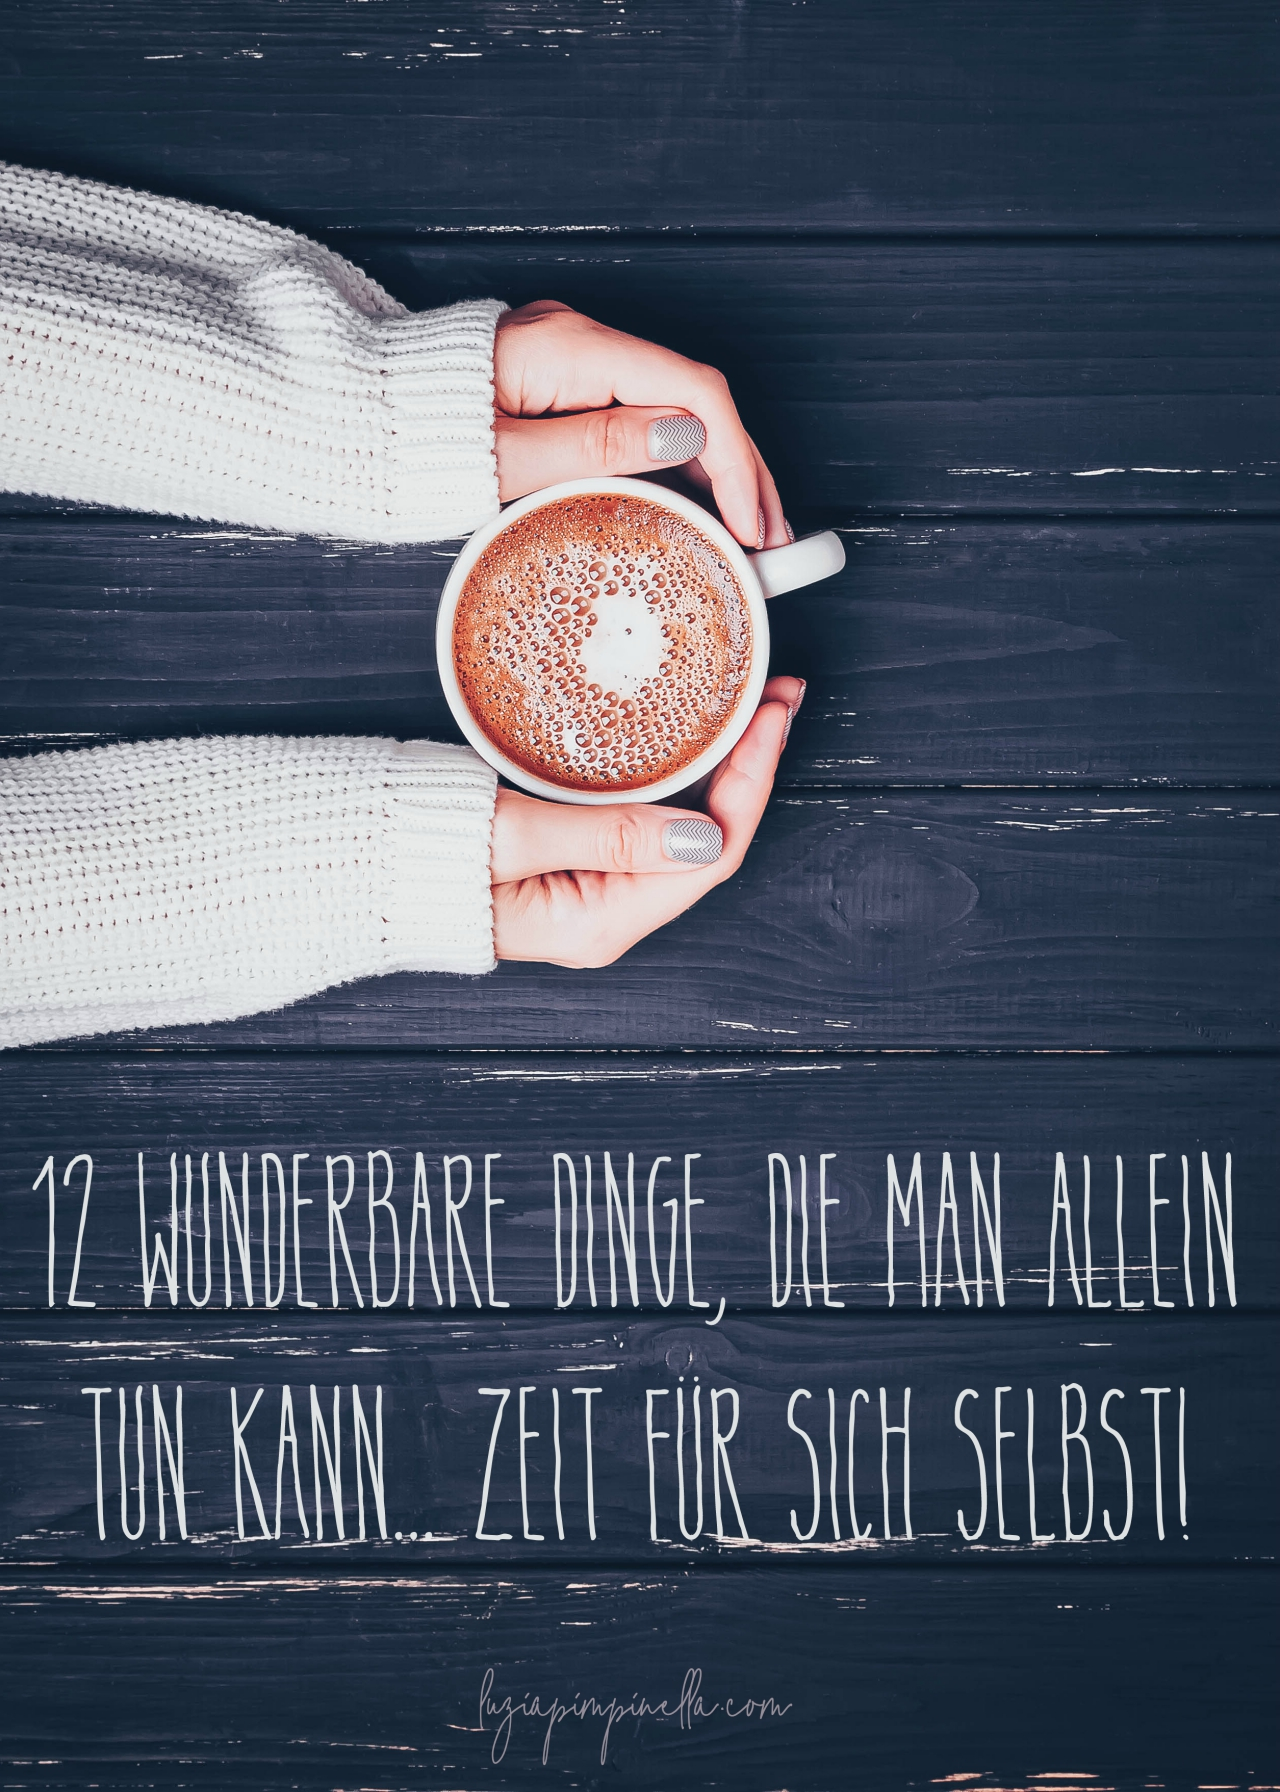 Zeit für sich selbst - 12 wunderbare Dinge, die man allein tun kann | me time & selfcare - 12 awesome things to do on your own | luziapimpinella.com